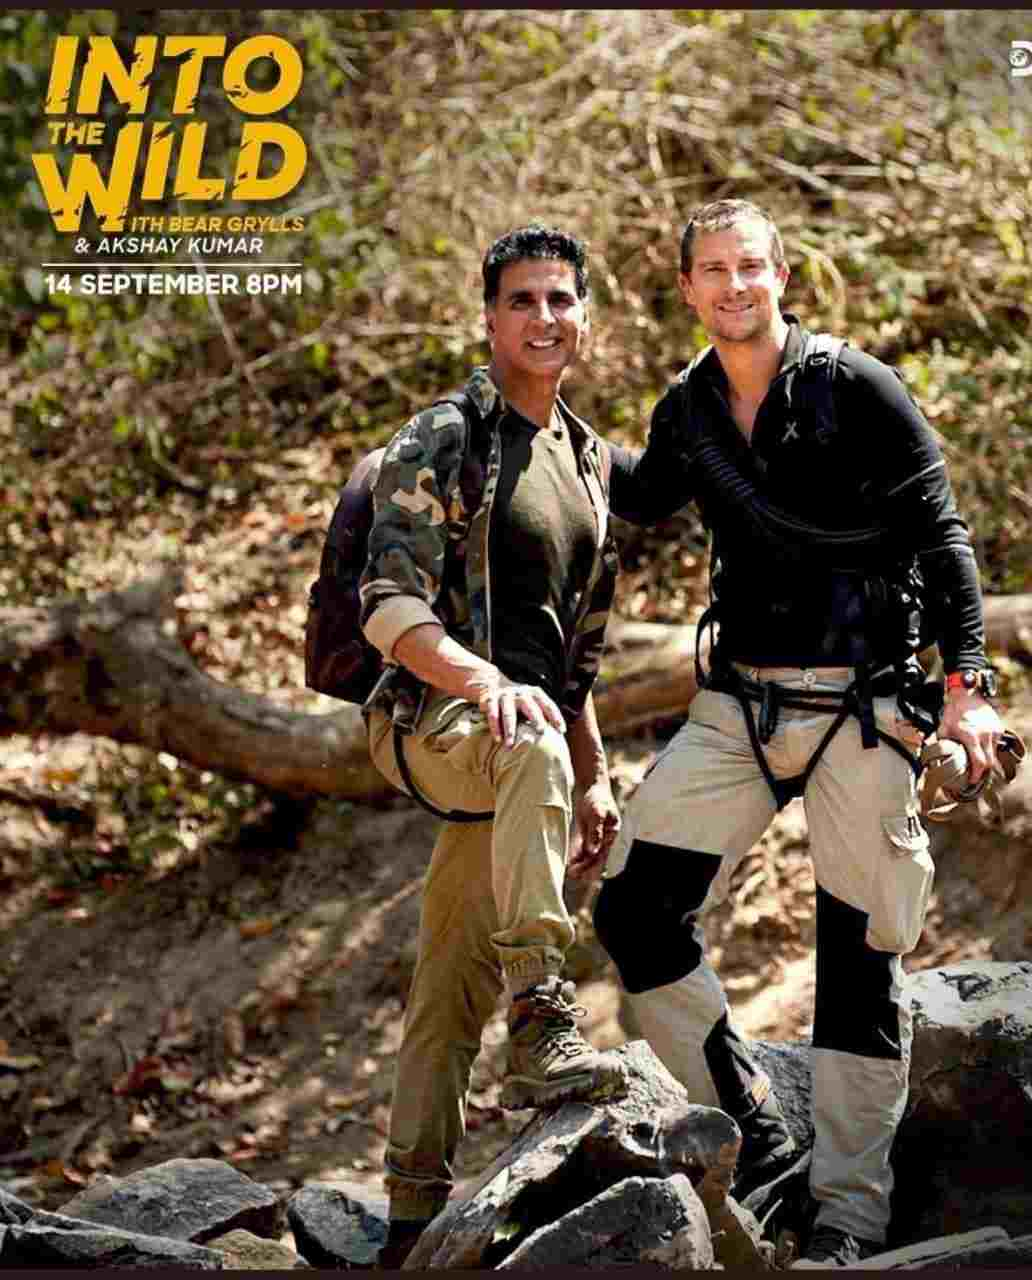 into-the-wild-with-bear-grylls-and-akshay-kumar-2020-hindi-show